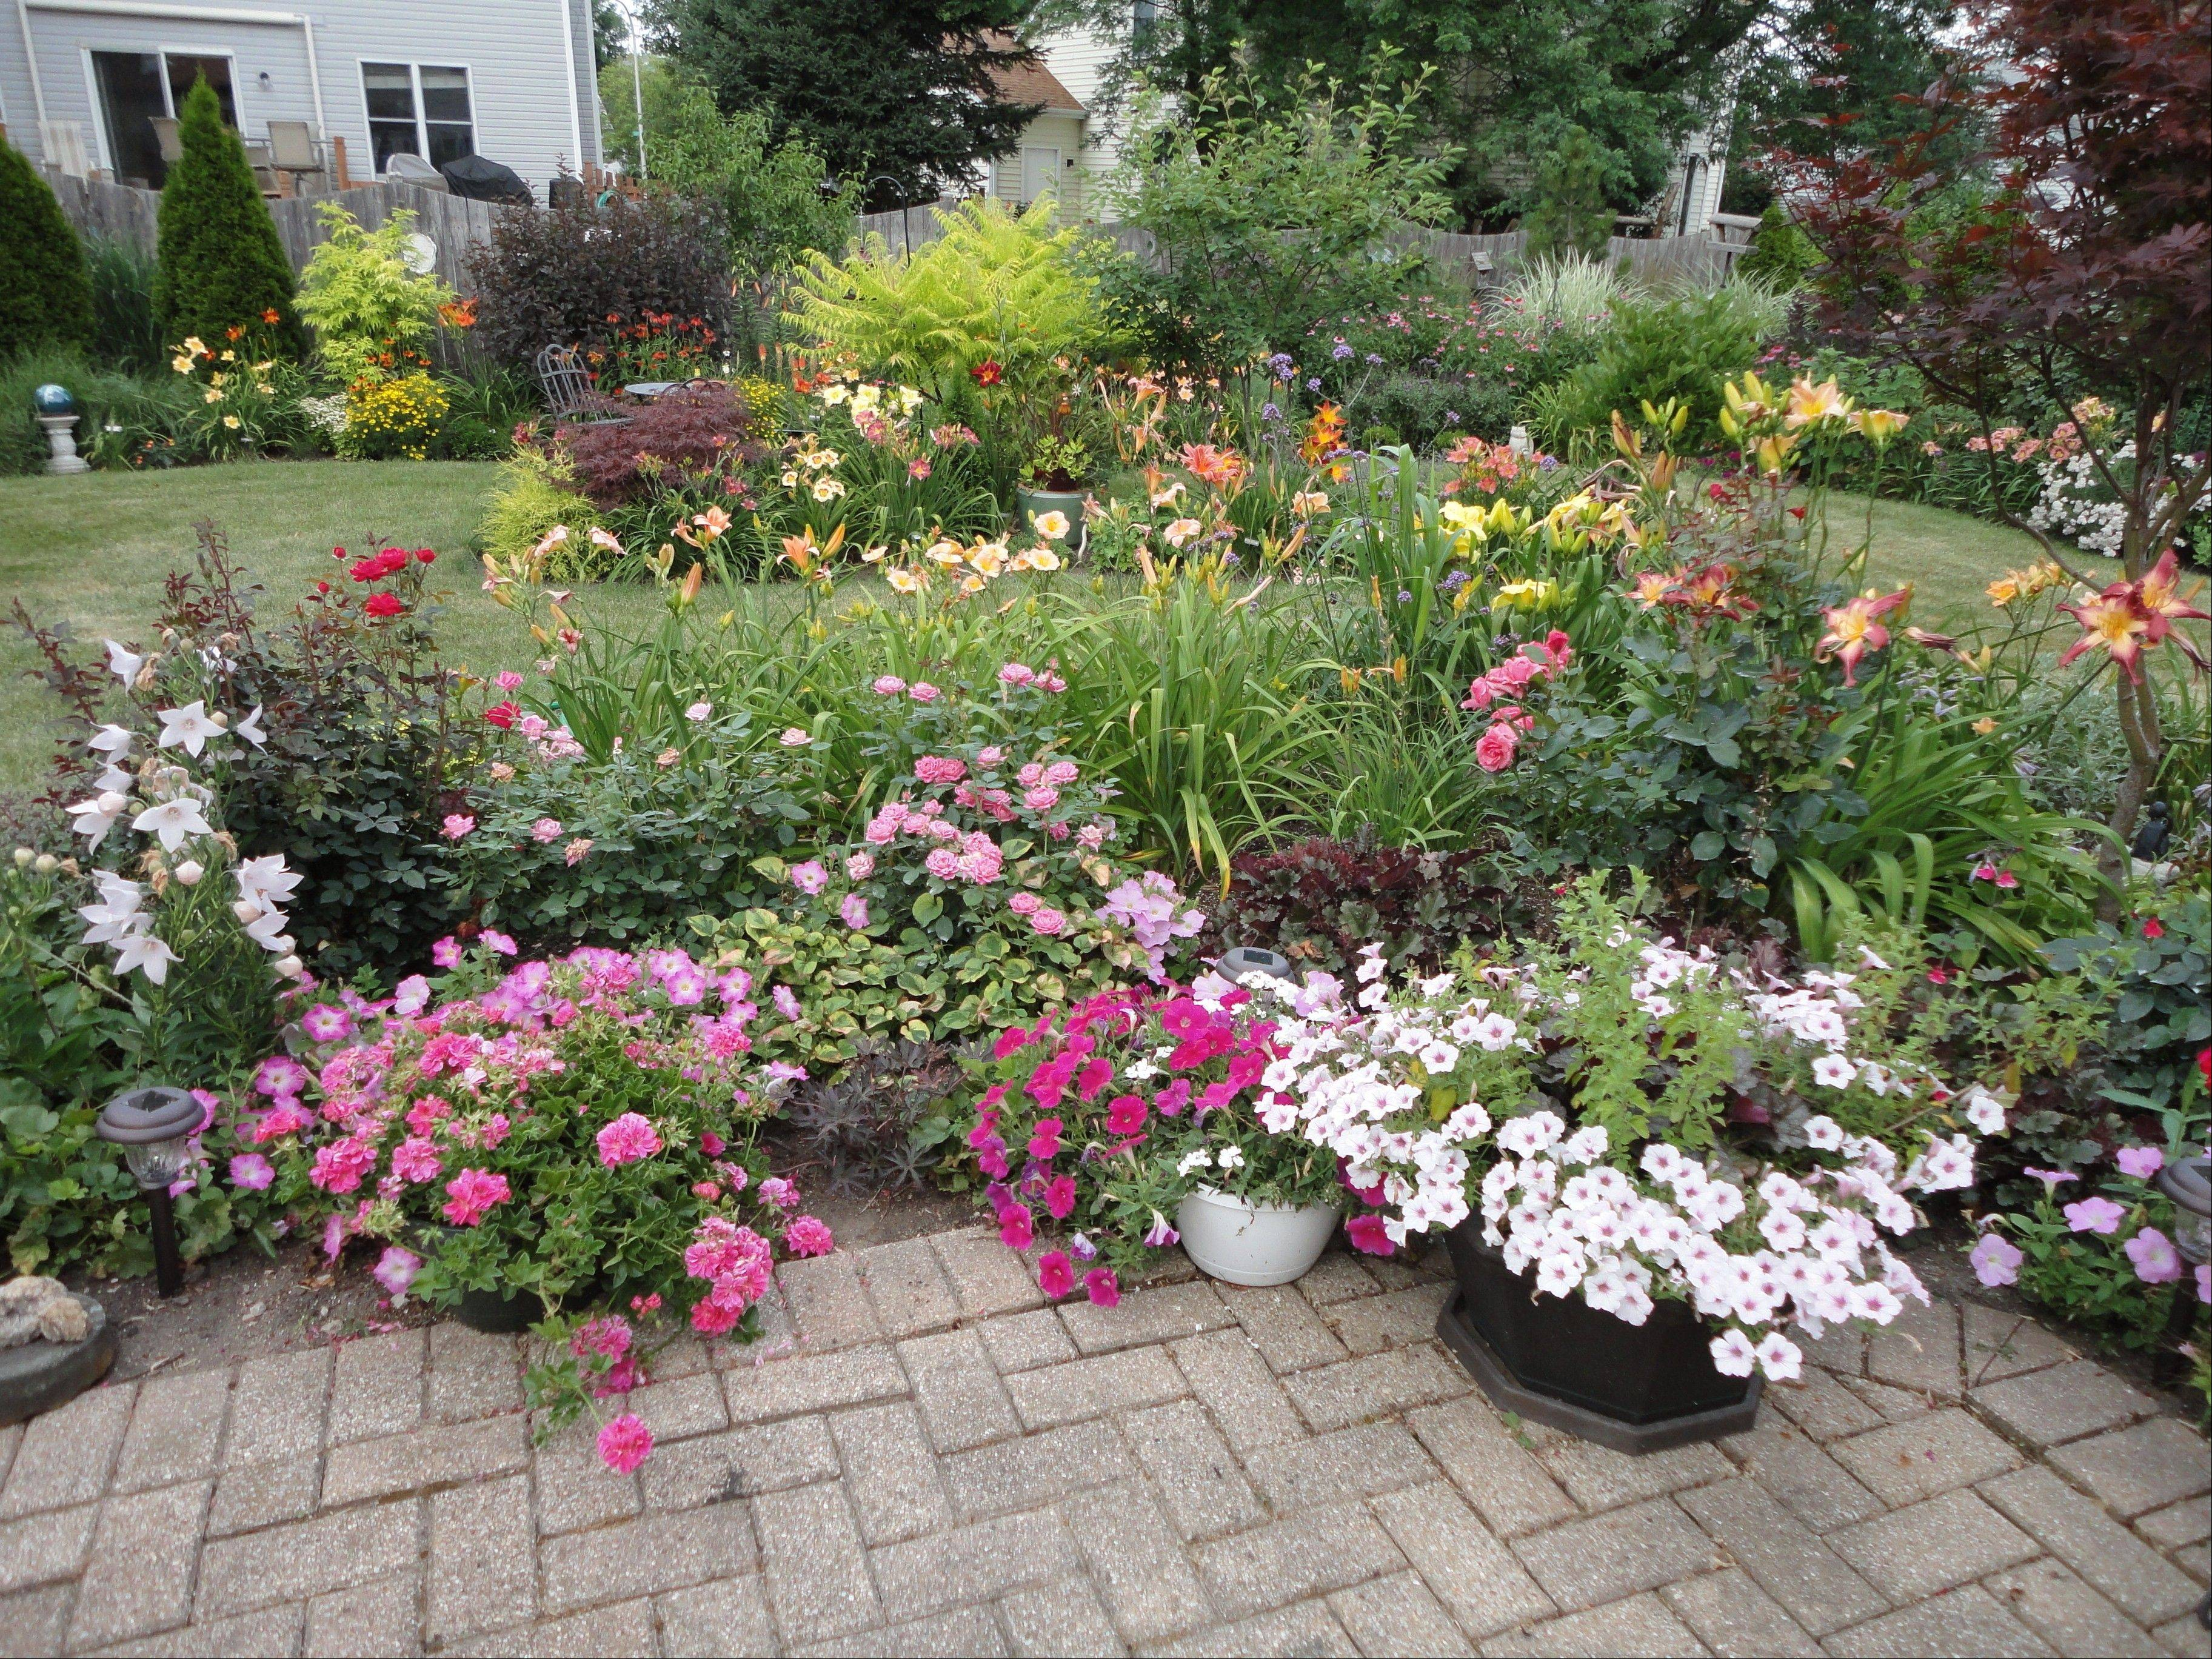 The garden of Jean Pechtel at 597 N. Lyle Ave., Elgin, will be featured at the Elgin Area American Association of University Women's garden walk, set for Saturday, June 23.